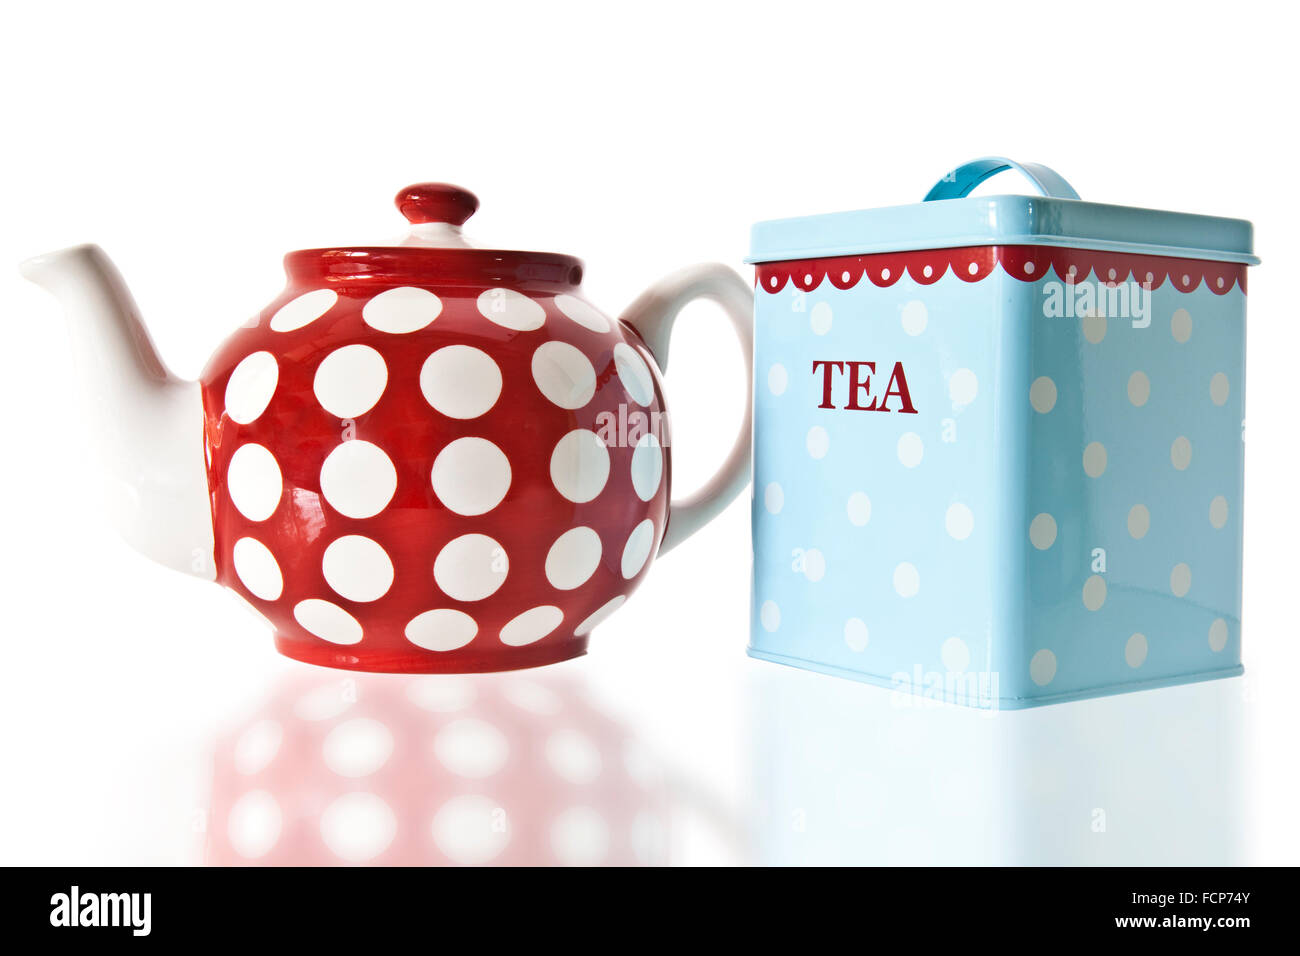 Tea Pot and Caddy On a white background - Stock Image